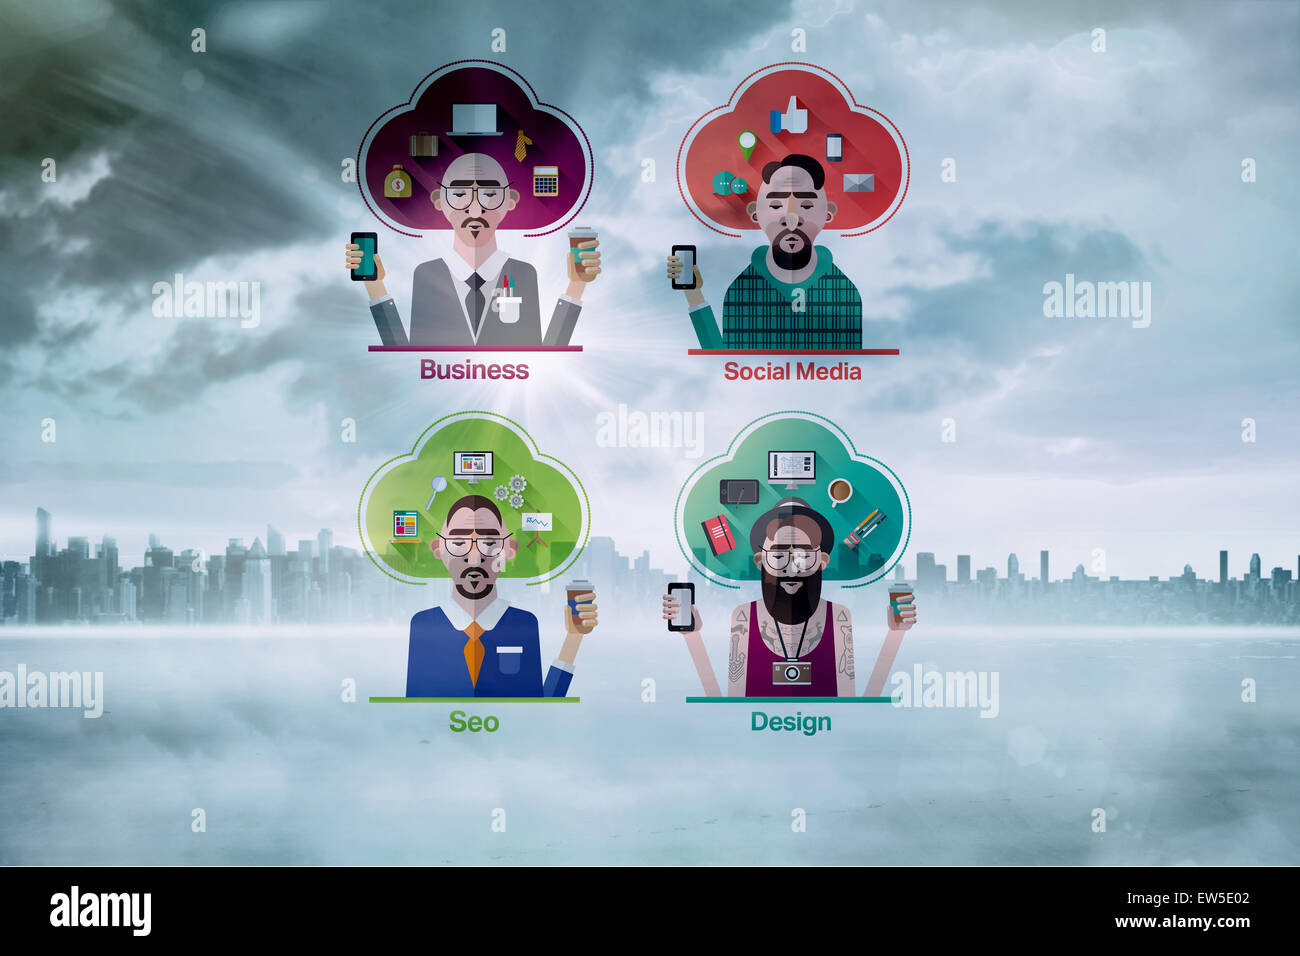 Composite image of different careers - Stock Image